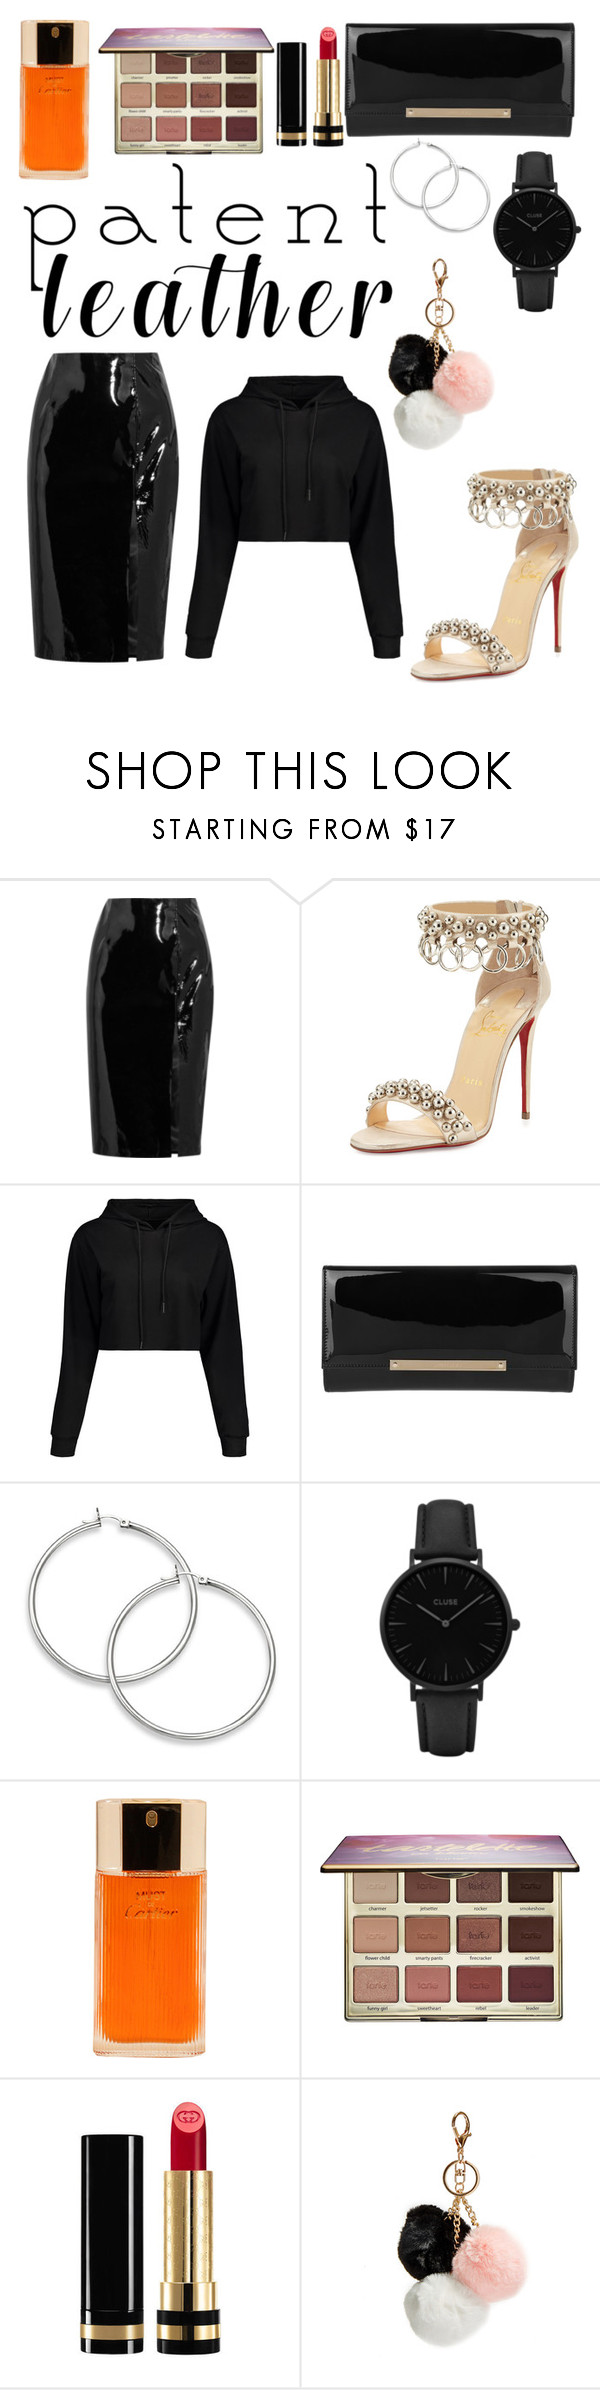 """""""Pat-in that leather"""" by tatianabilly ❤ liked on Polyvore featuring Topshop Unique, Christian Louboutin, Jimmy Choo, CLUSE, Cartier, tarte, Gucci and GUESS"""